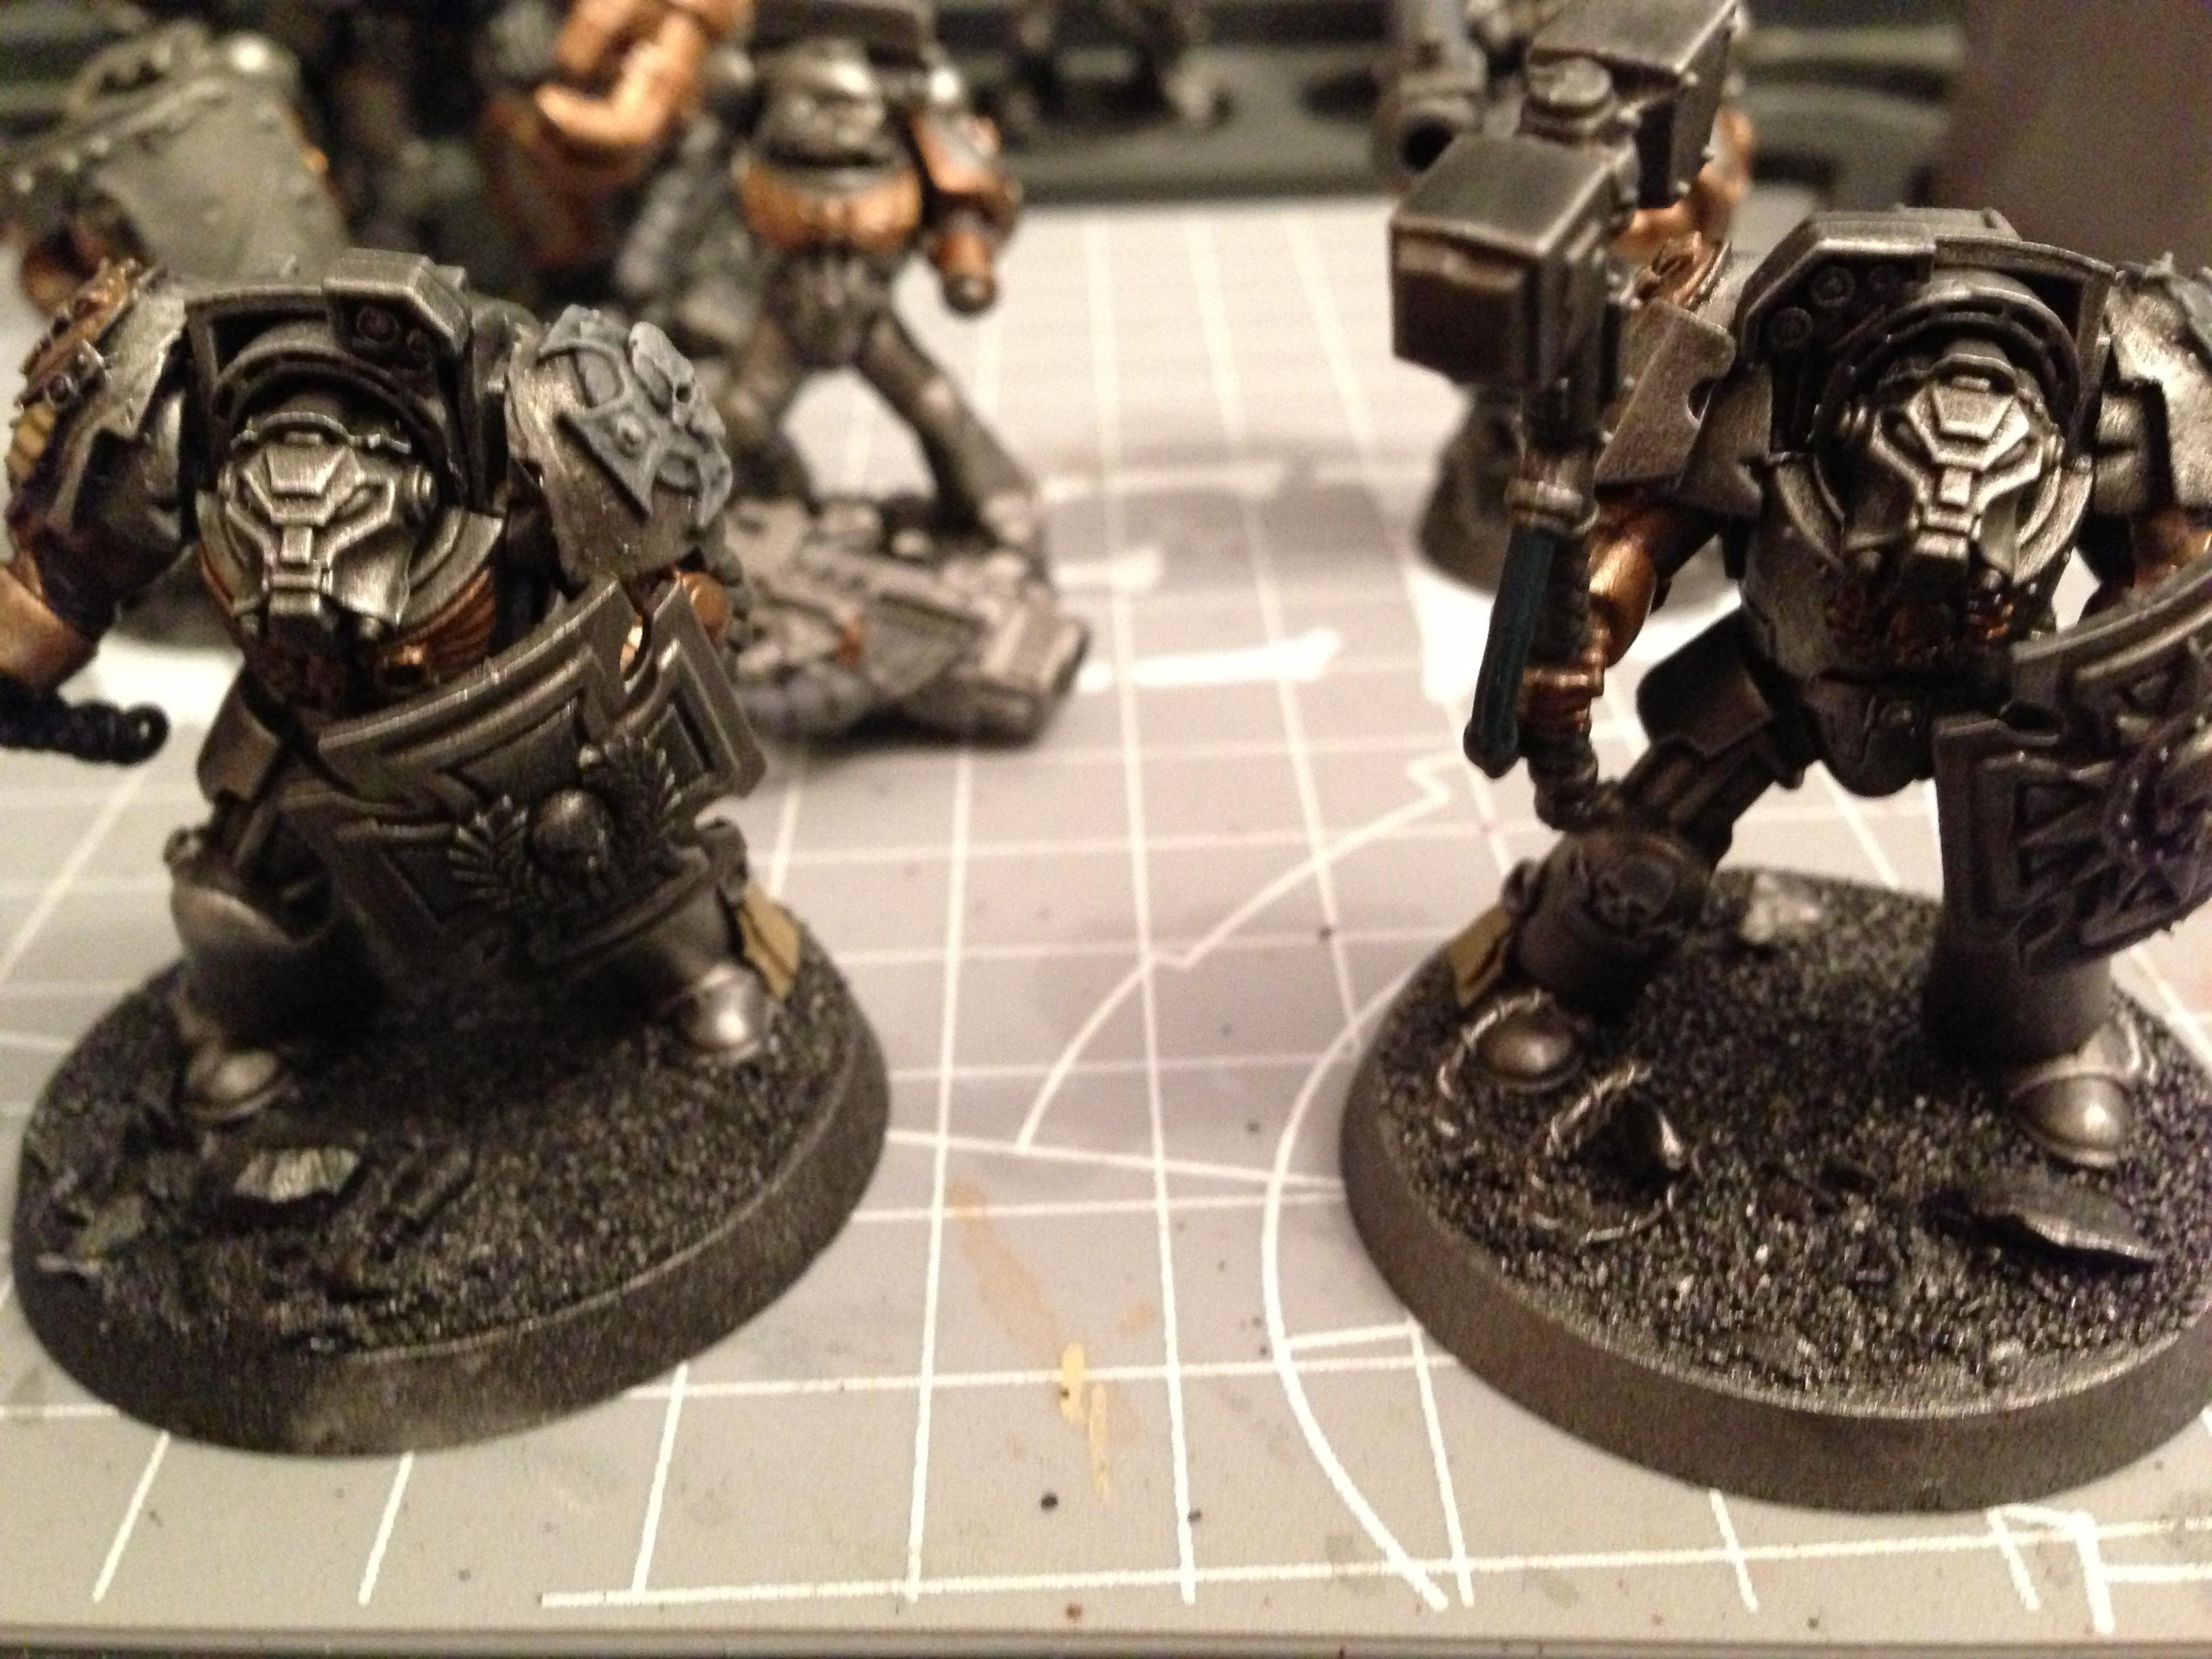 Iron Fists, Space Marines, Warhammer 40,000